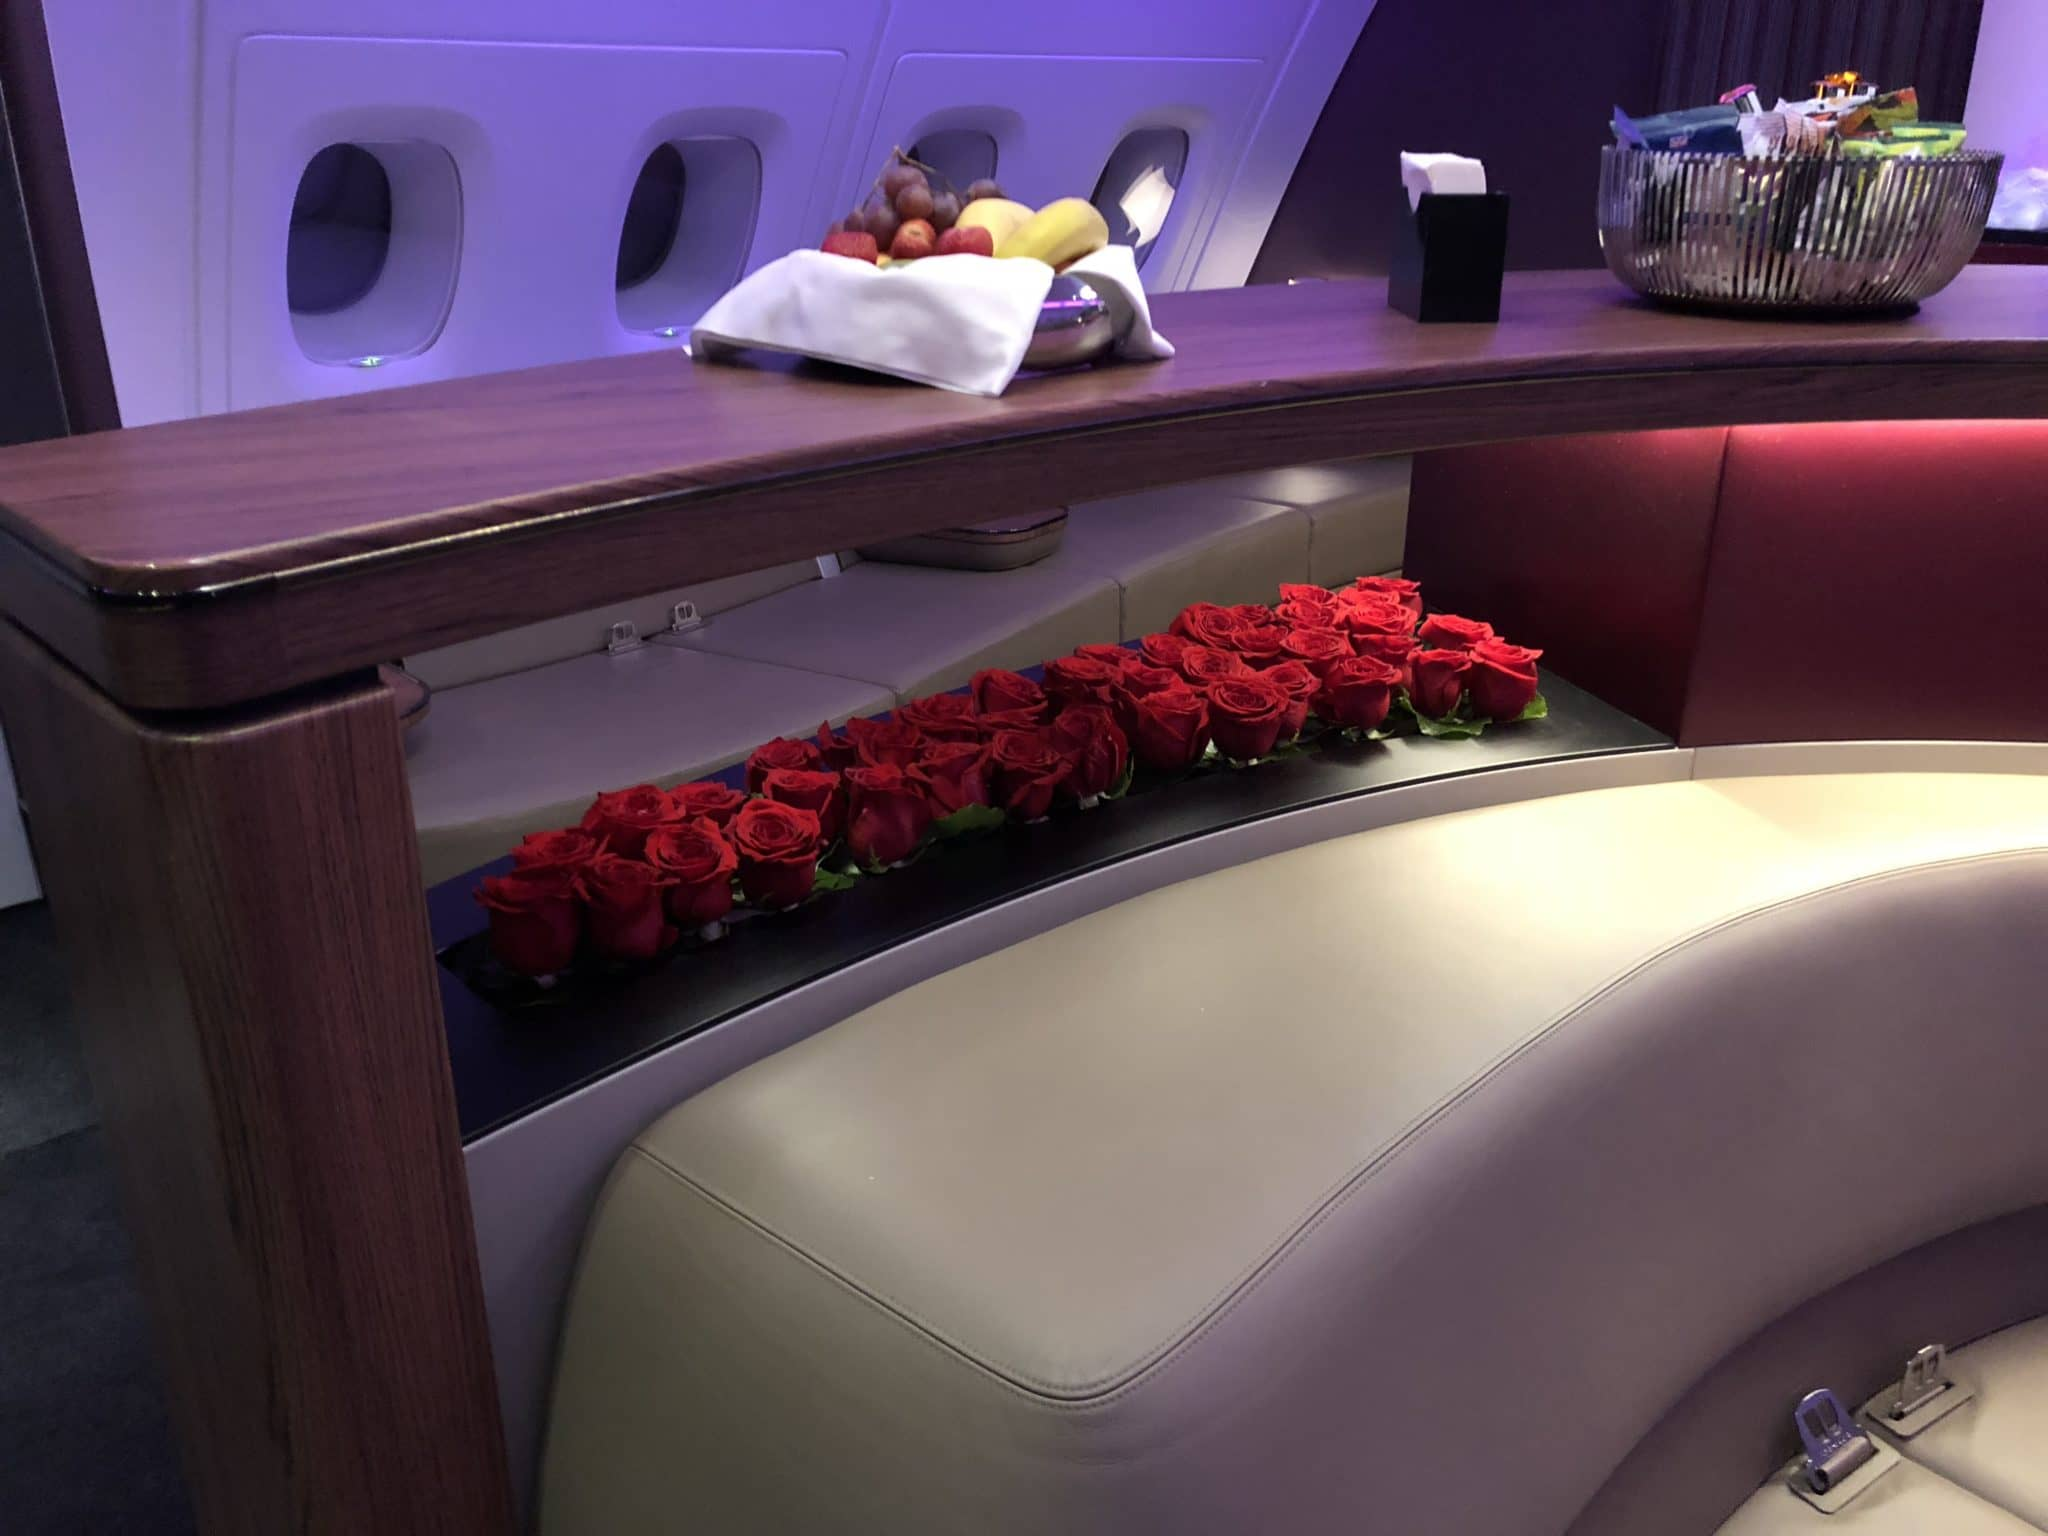 Qatar Airways Business Class A380 Lounge Rosen